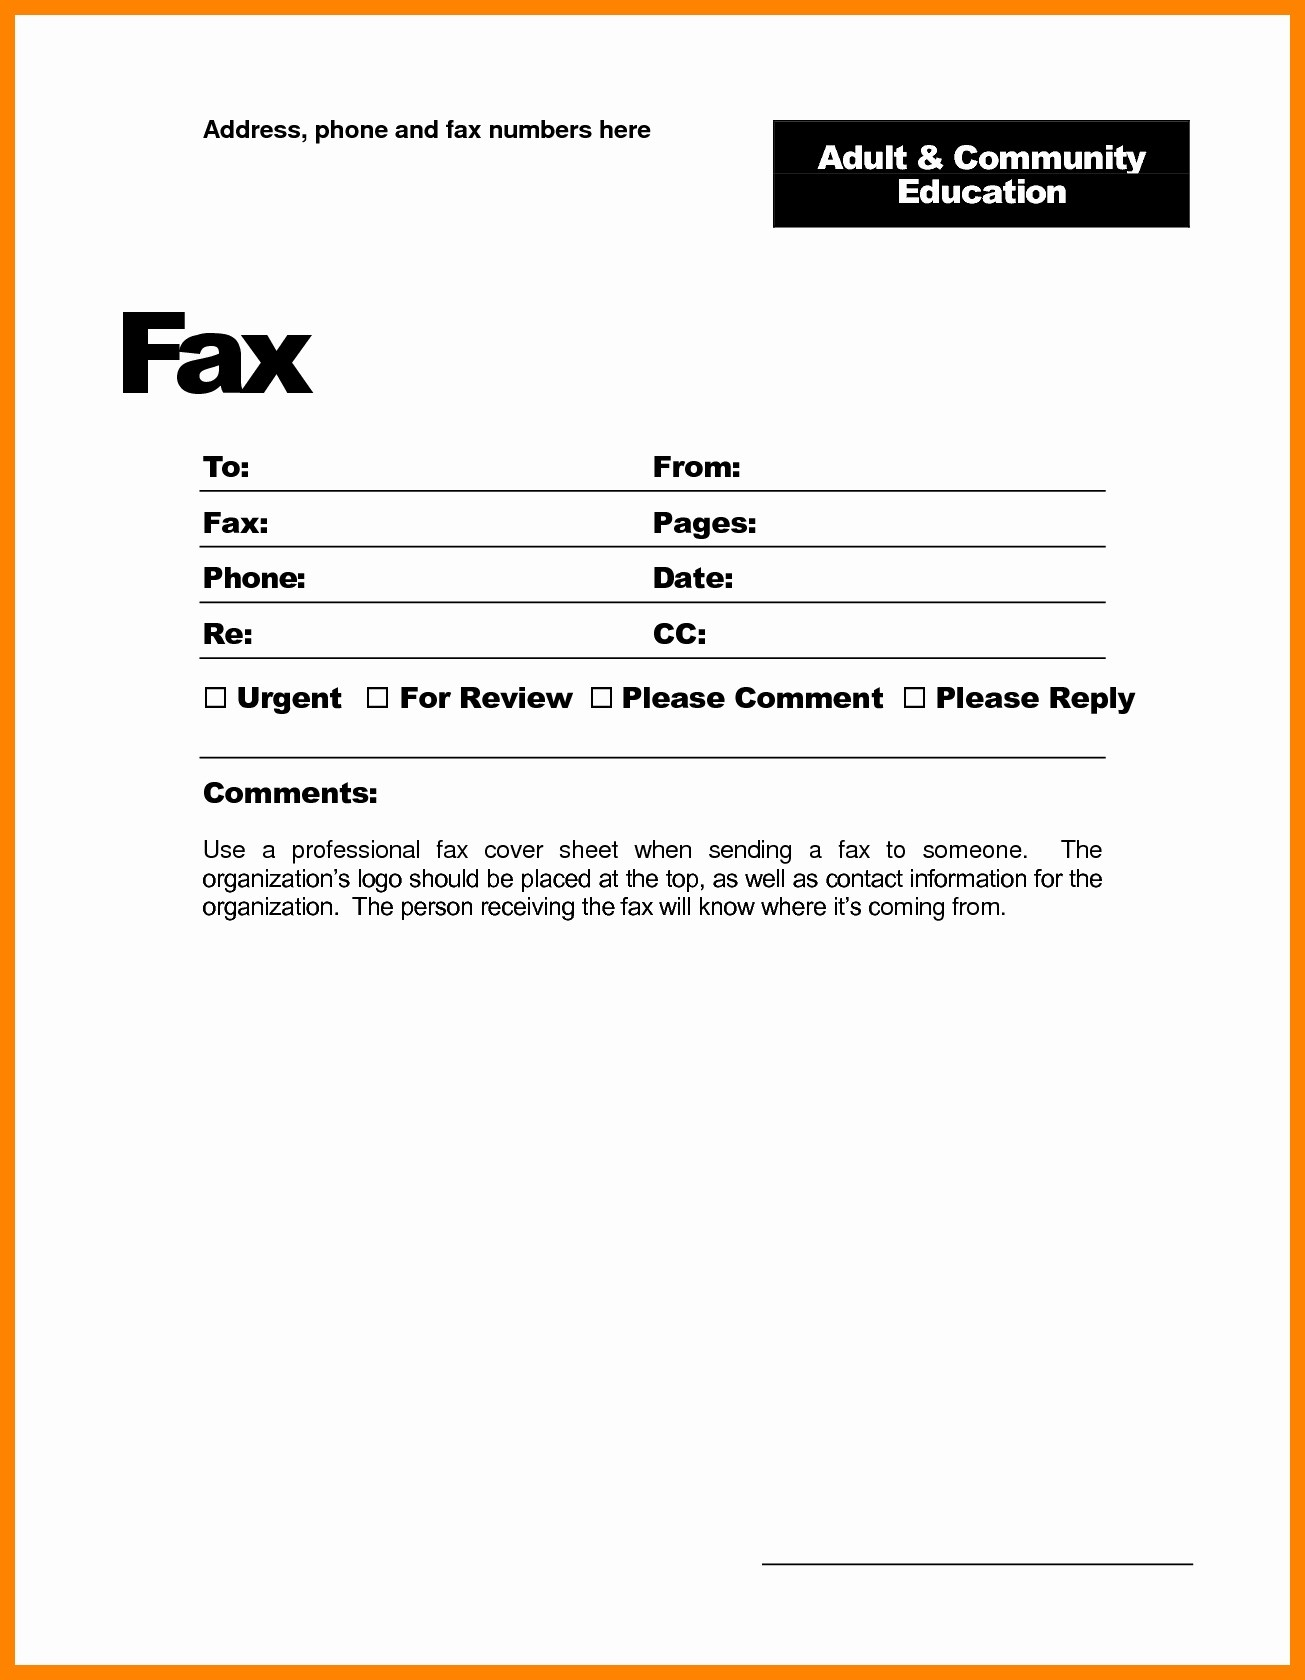 Fax Cover Letter Template Google Docs - Fresh Google Sheets Templates Your Template Collection